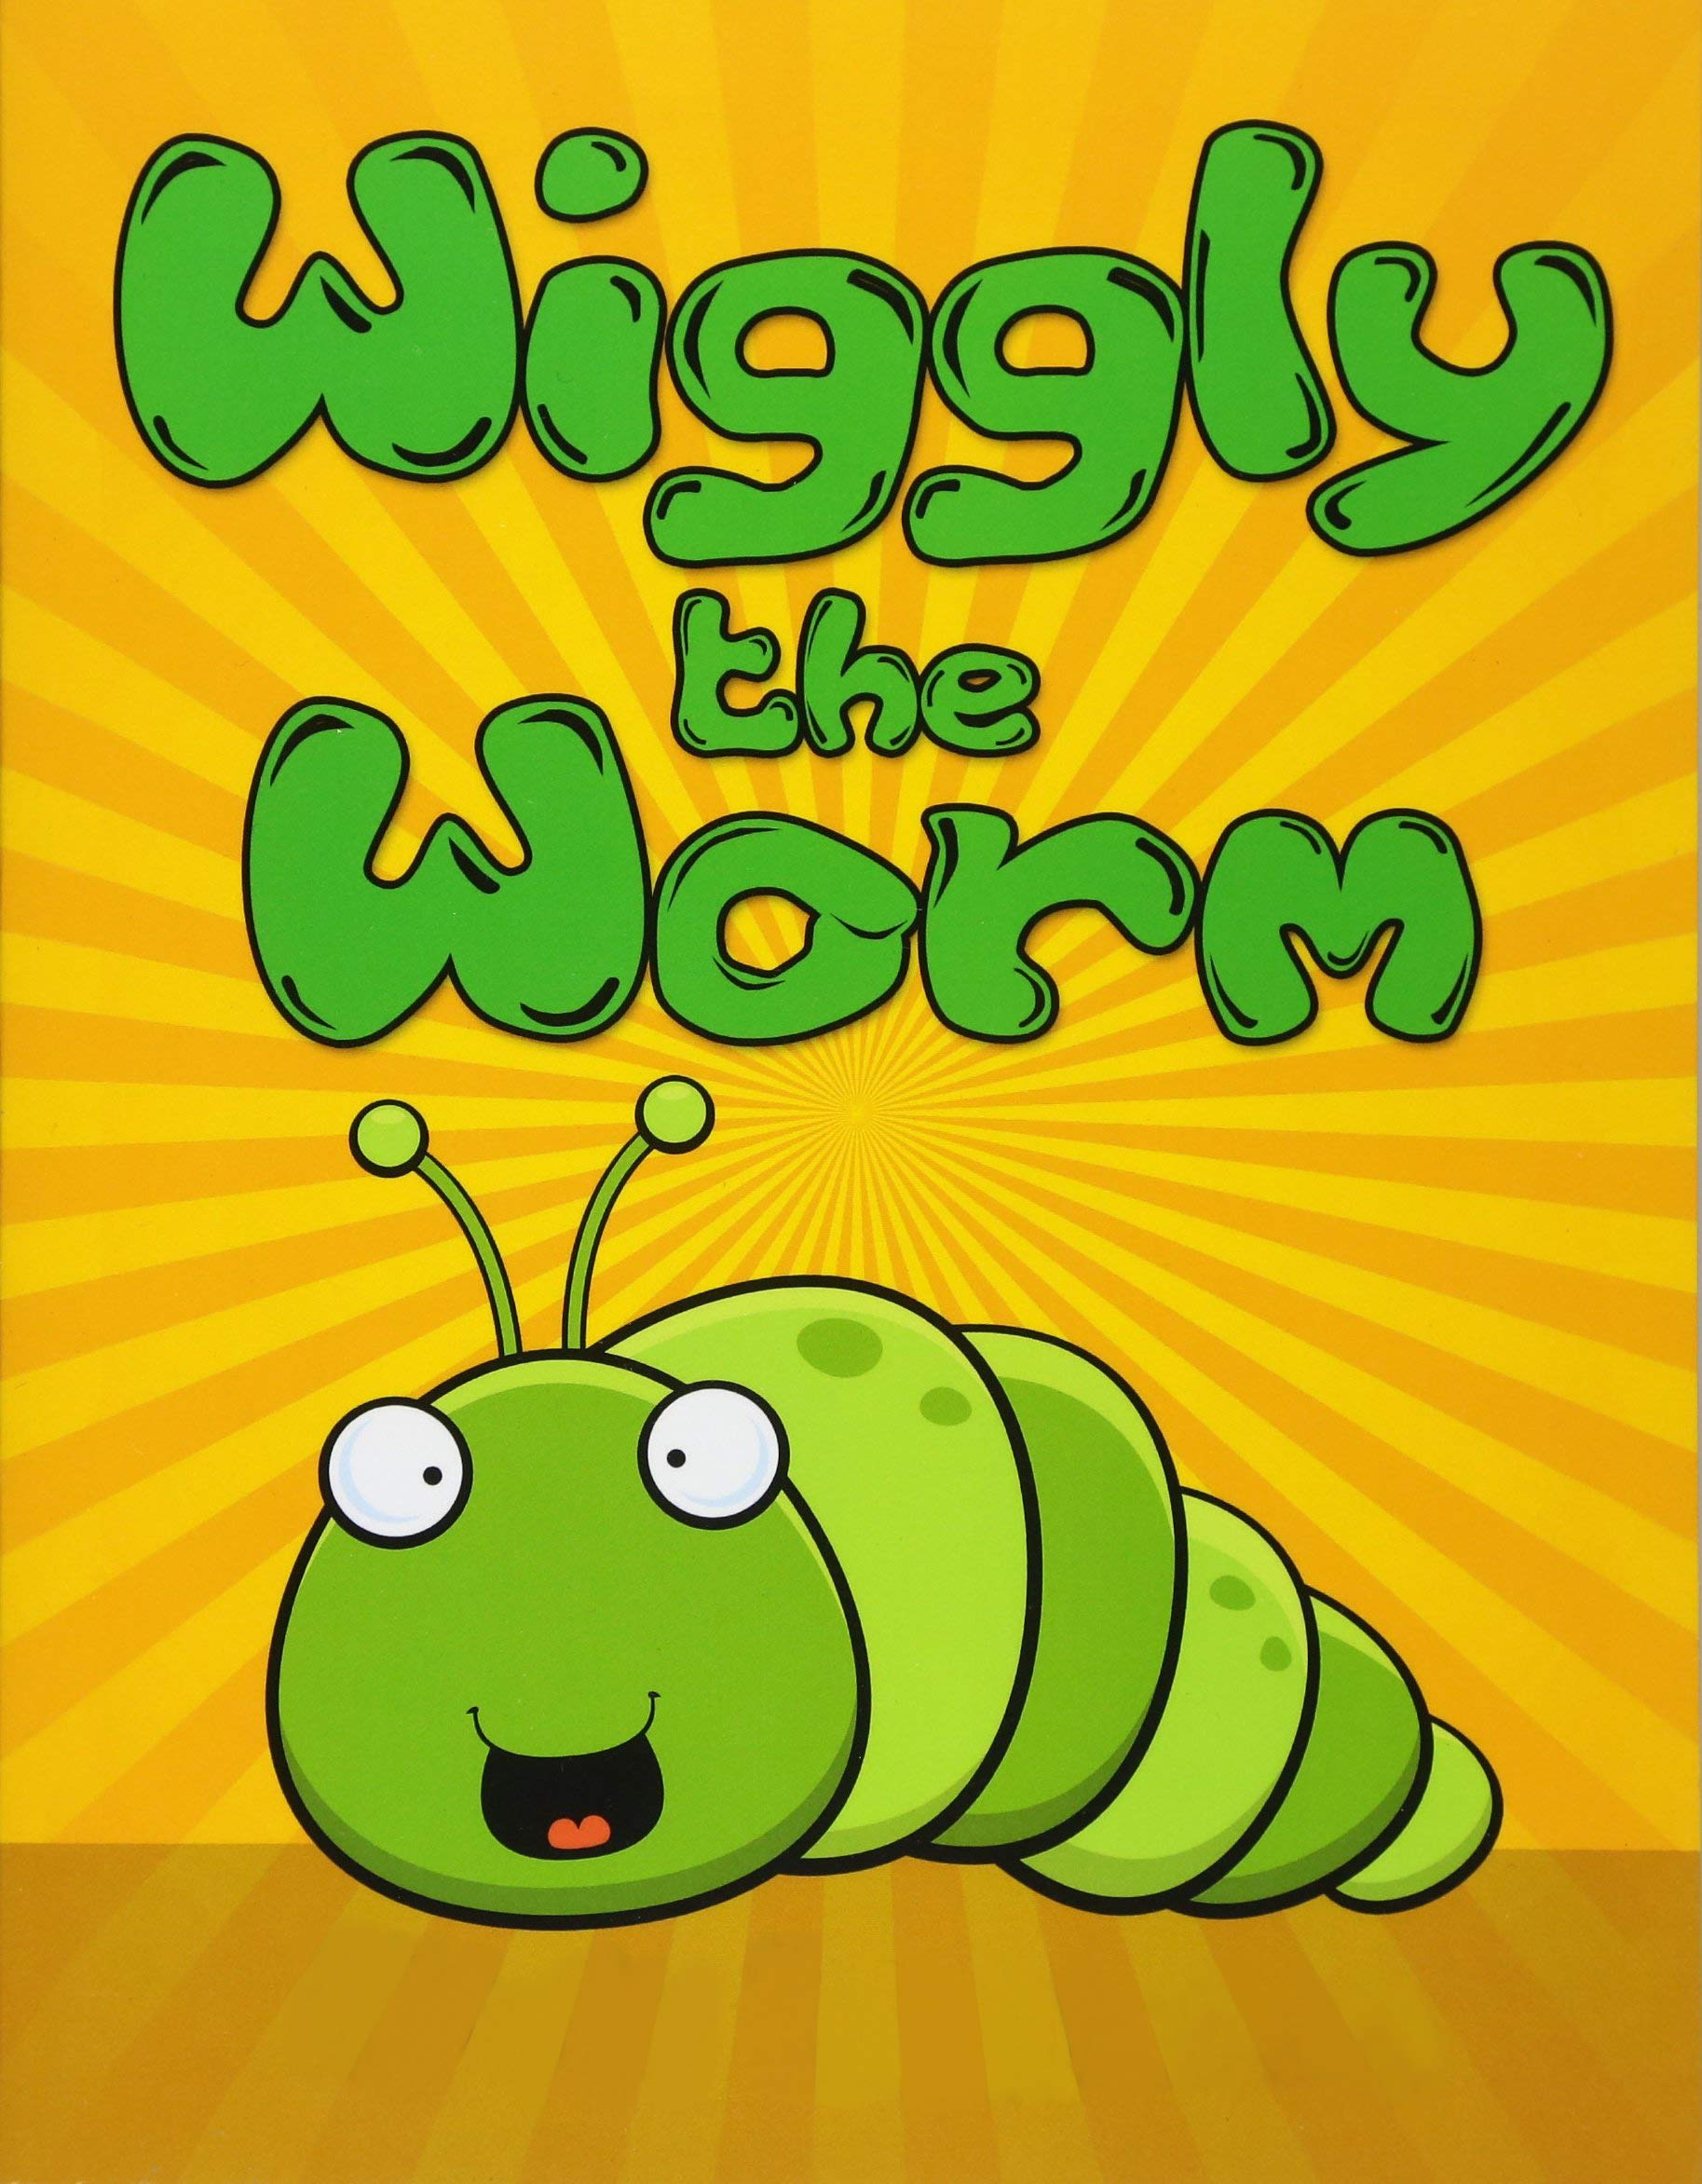 Wiggly the Worm: Fun Short Bedtime Stories for Kids Ages 3-10 (Early Bird Reader Book)